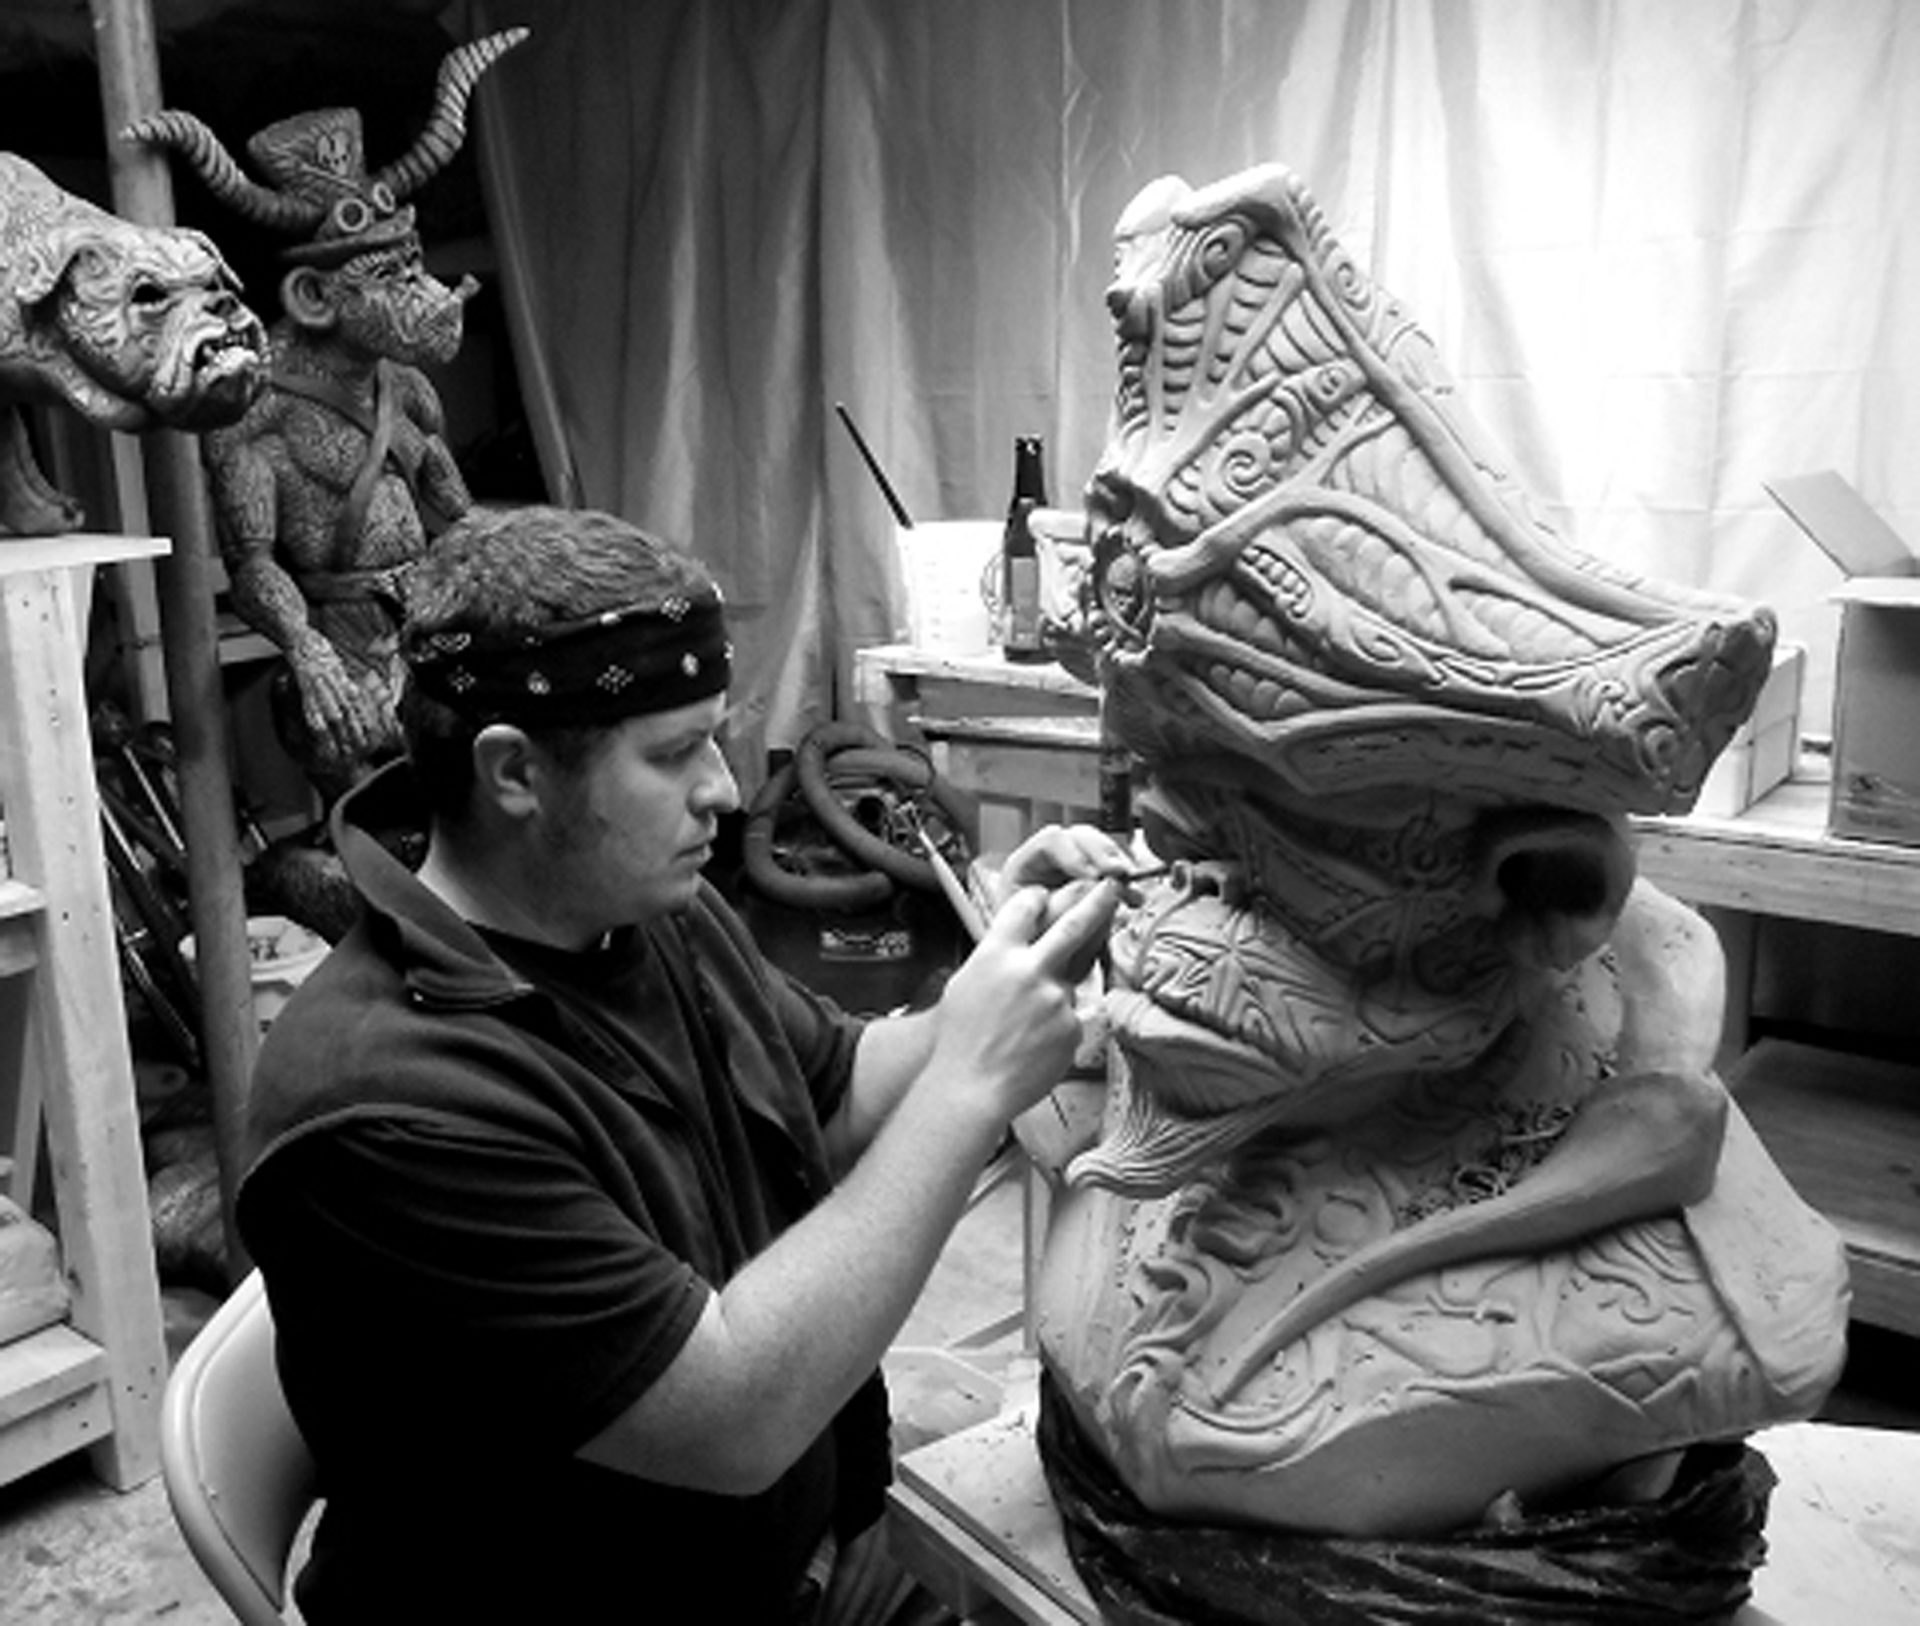 Brian Somerville working on sculpting one of his monsters in his studio.